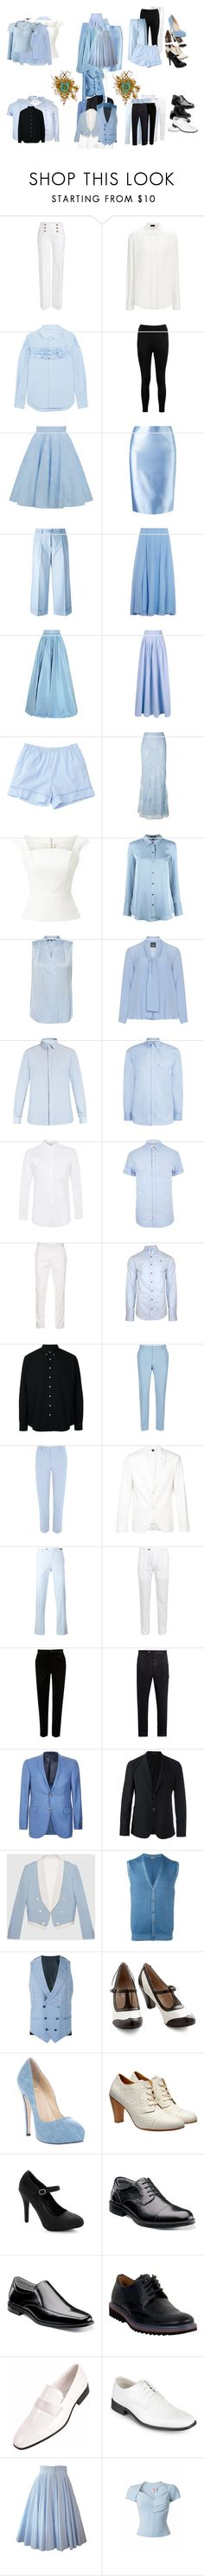 """Beauxbatons - clothing"" by hogwartsgirl113 ❤ liked on Polyvore featuring Emilio Pucci, Comme des Garçons GIRL, Boohoo, Martha Medeiros, P.A.R.O.S.H., Michelle Mason, Jenny Packham, Rosie Assoulin, Alberta Ferretti and Roland Mouret"